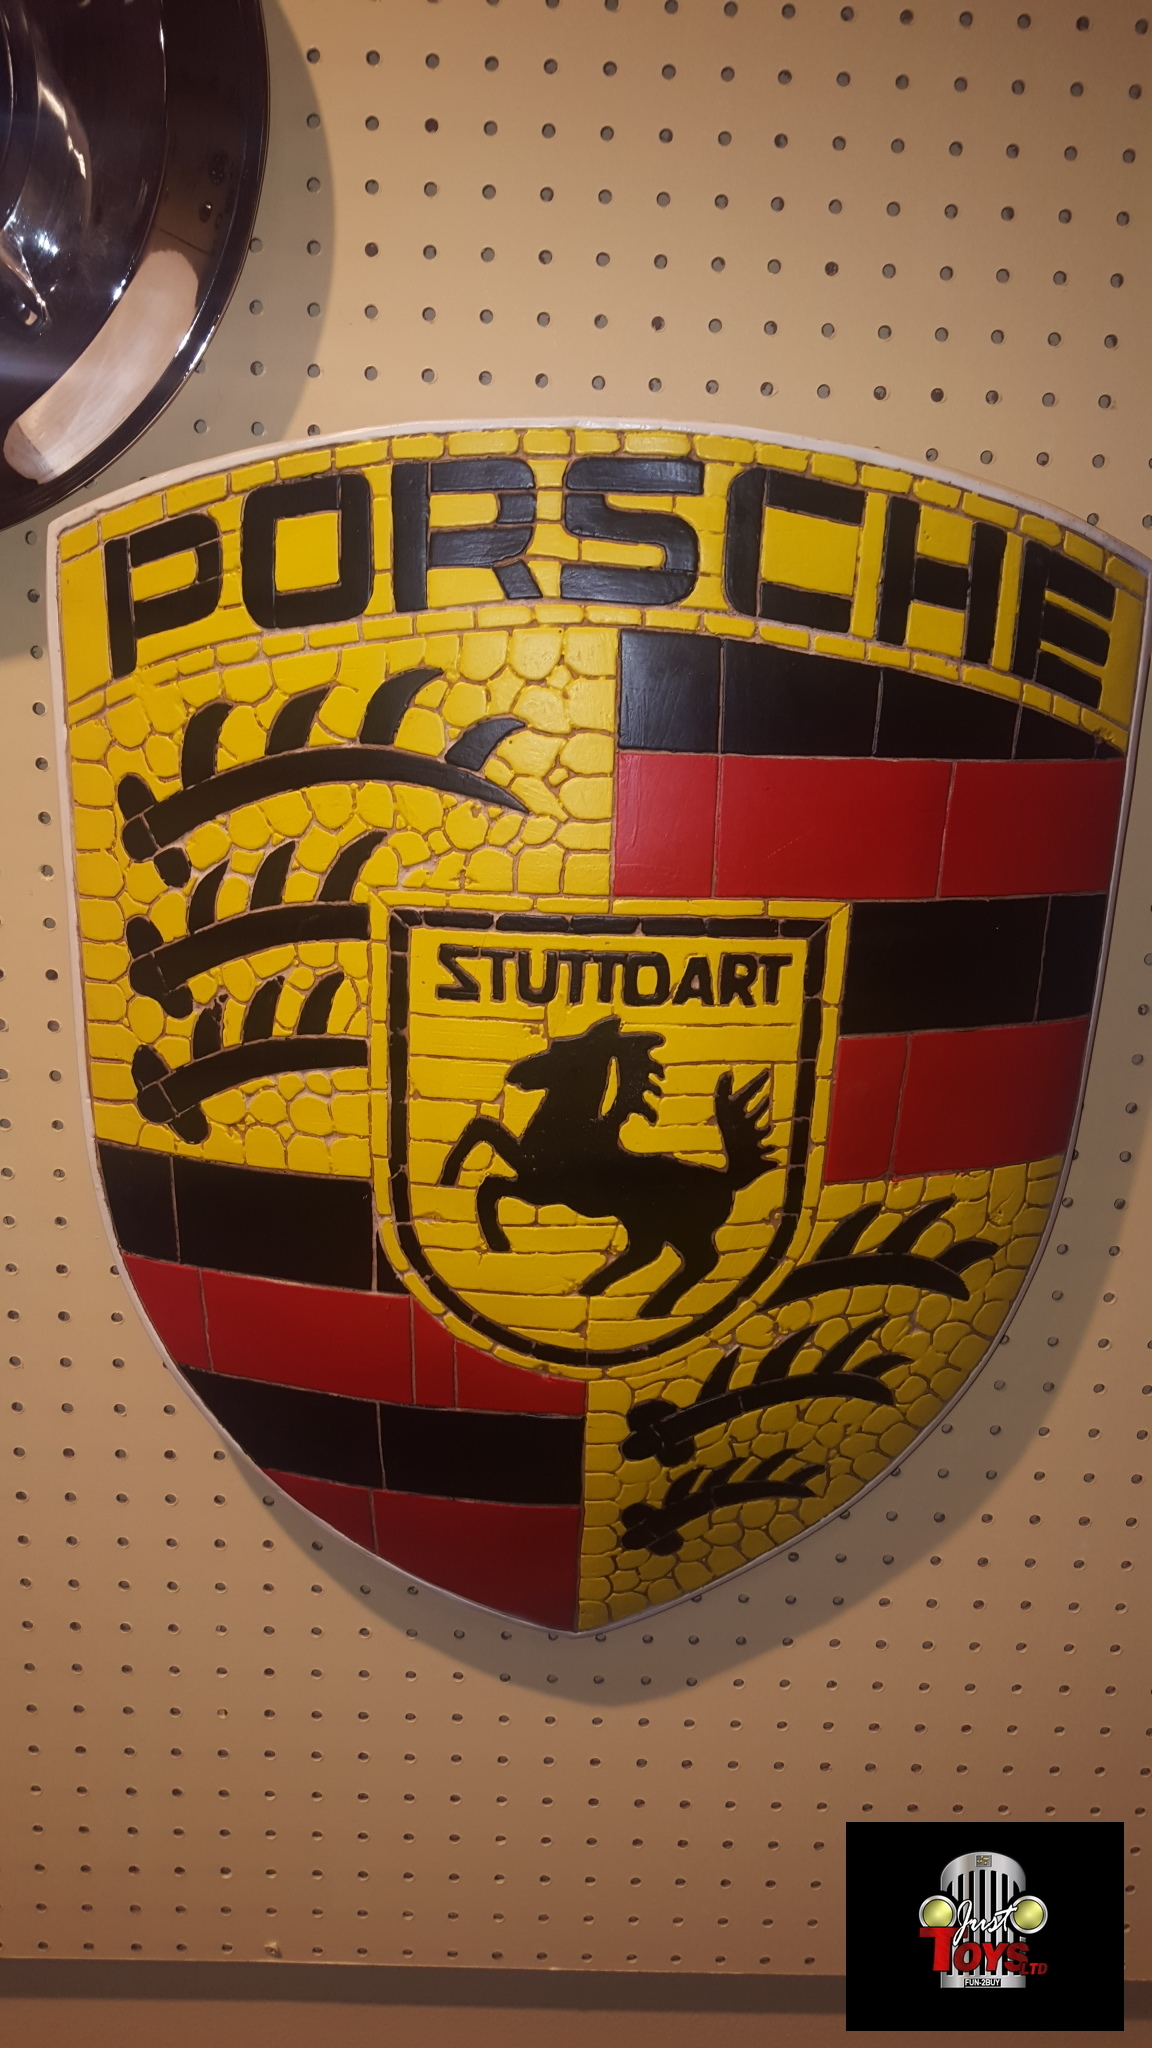 Porsche Decorative Wall Hanger